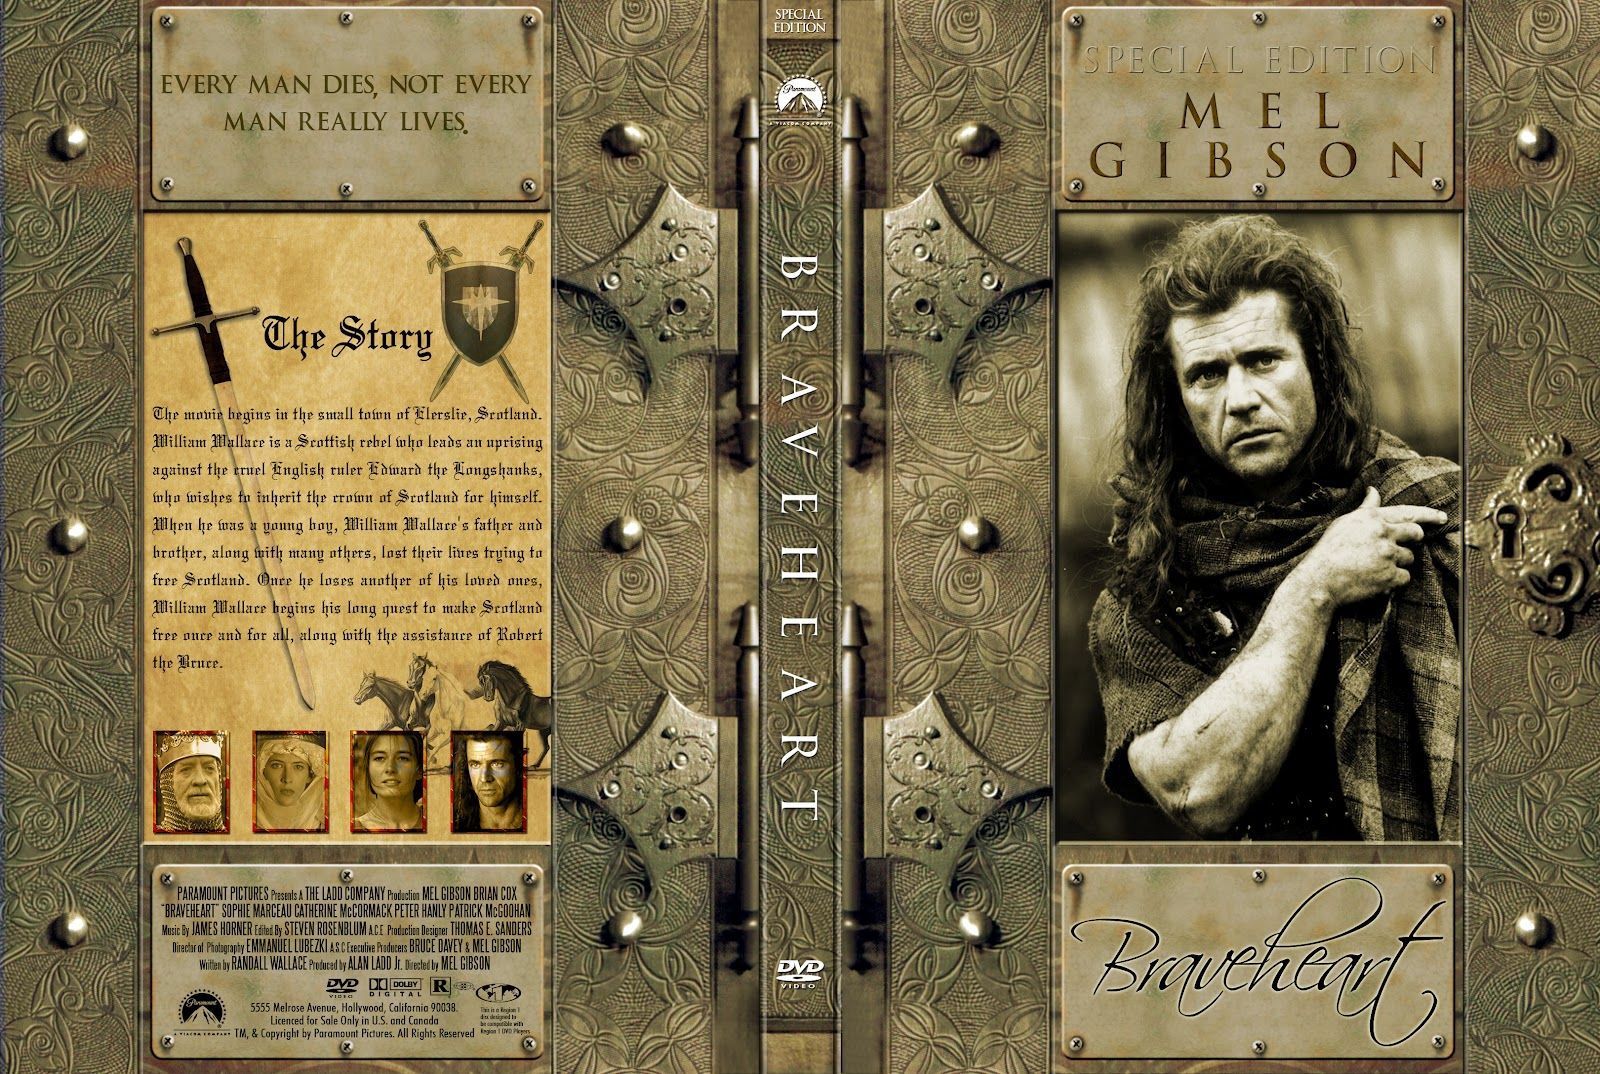 Braveheart Special Edition Dvd Front Cover